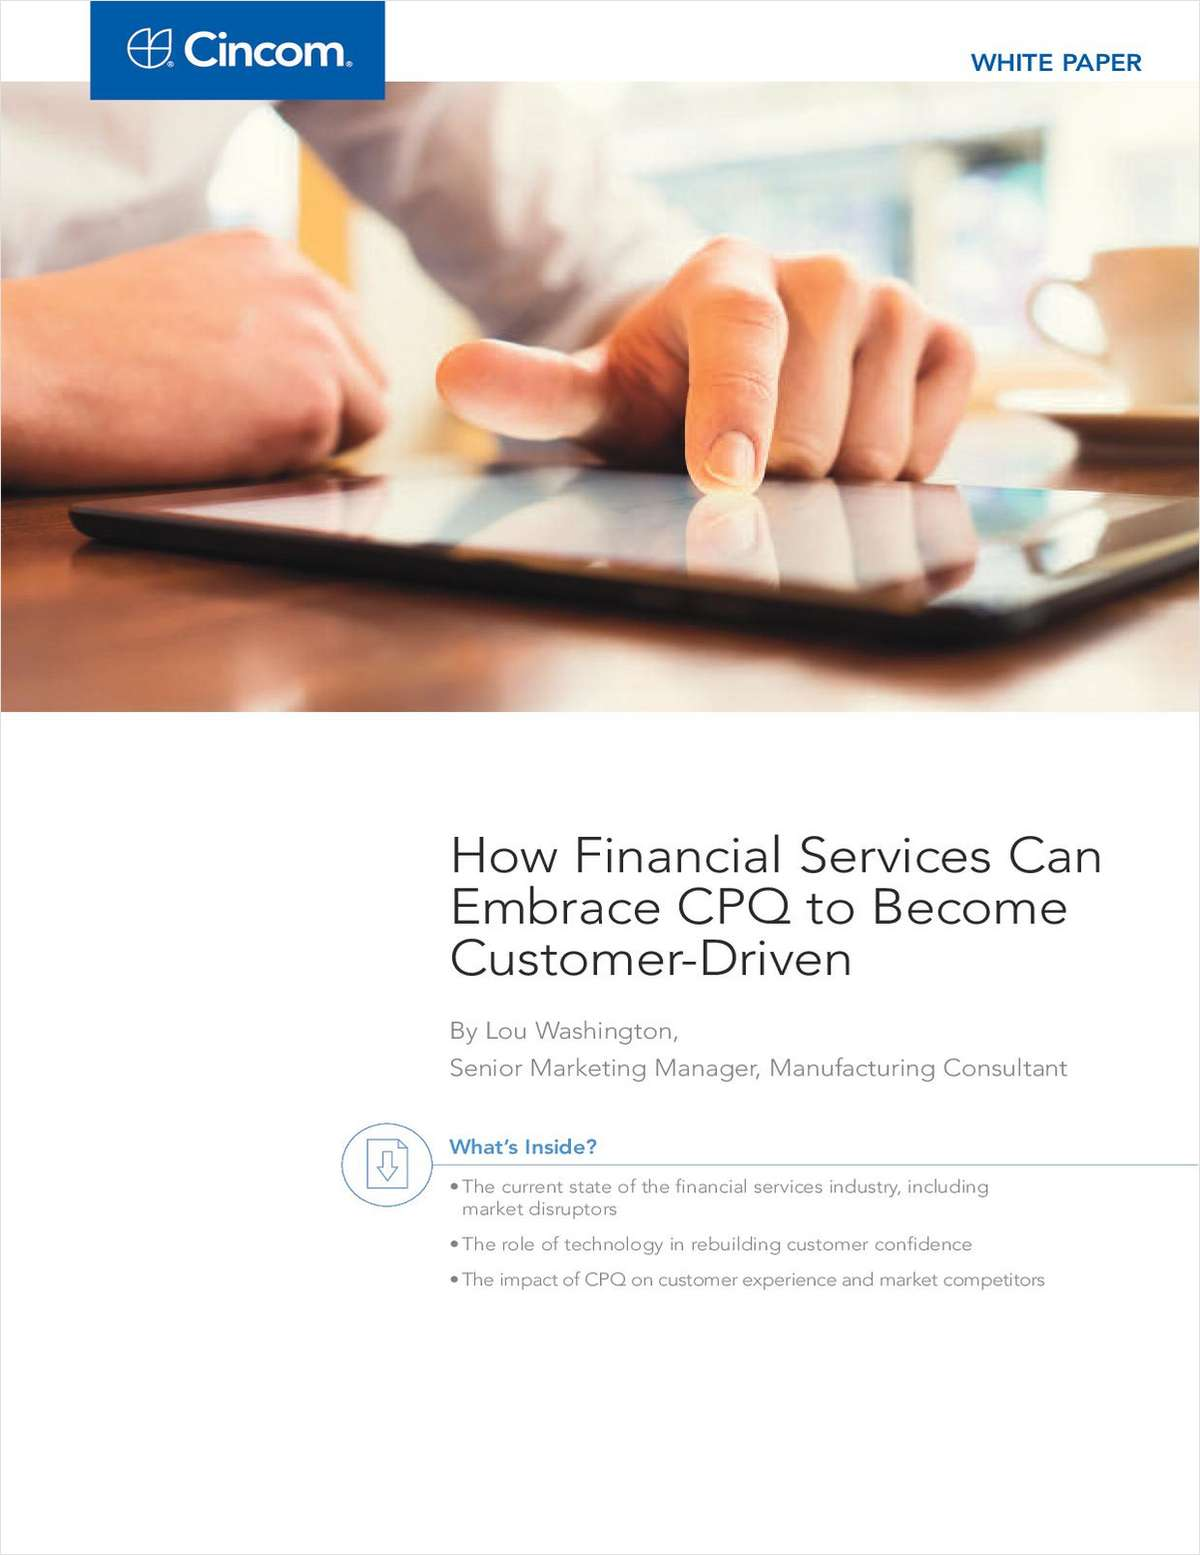 Financial Services: What's the Key to Being Customer-Driven?